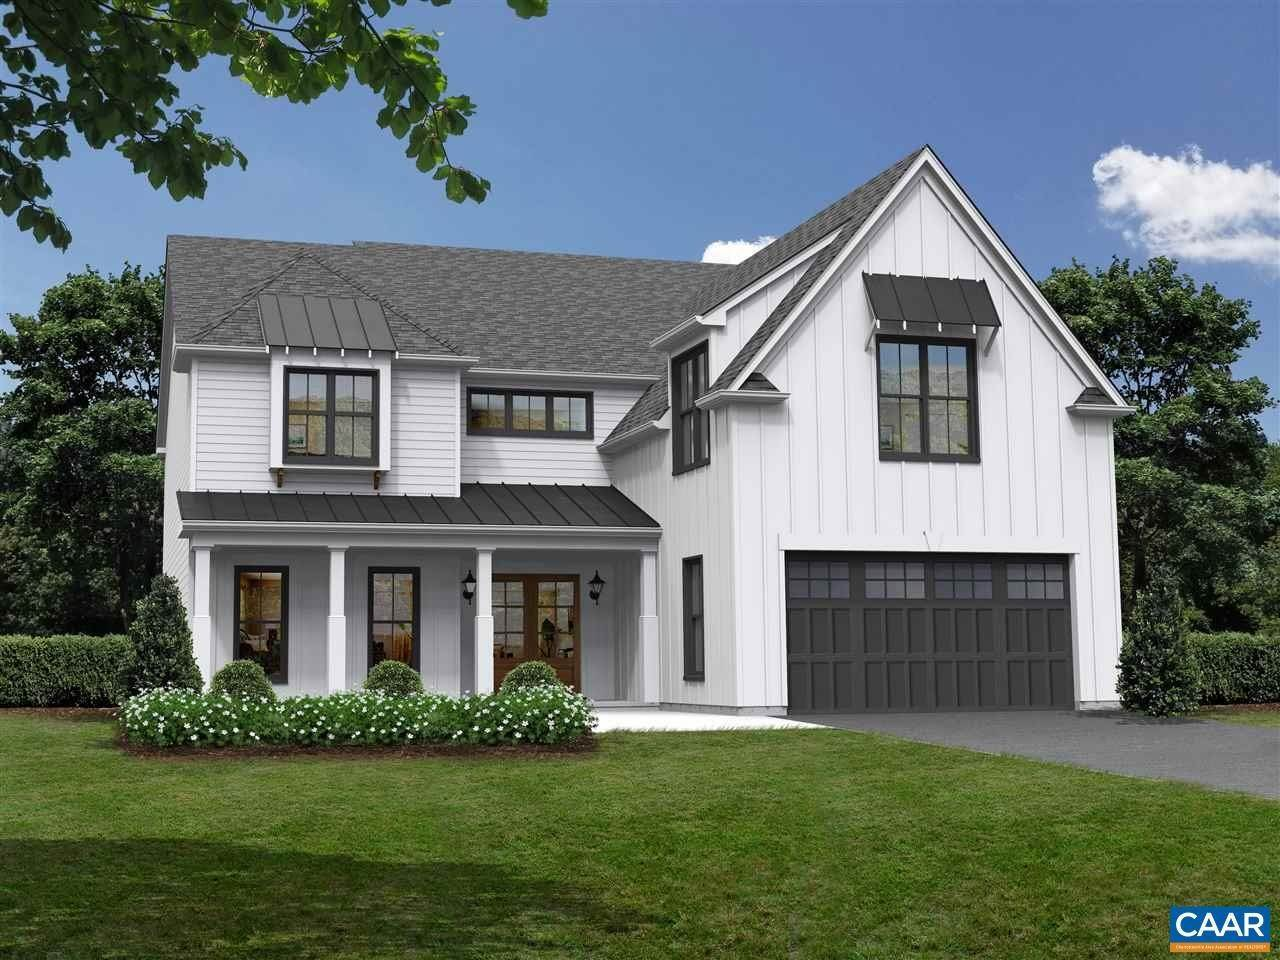 Single Family Homes for Sale at 70 BISHOPGATE Lane Crozet, Virginia 22932 United States